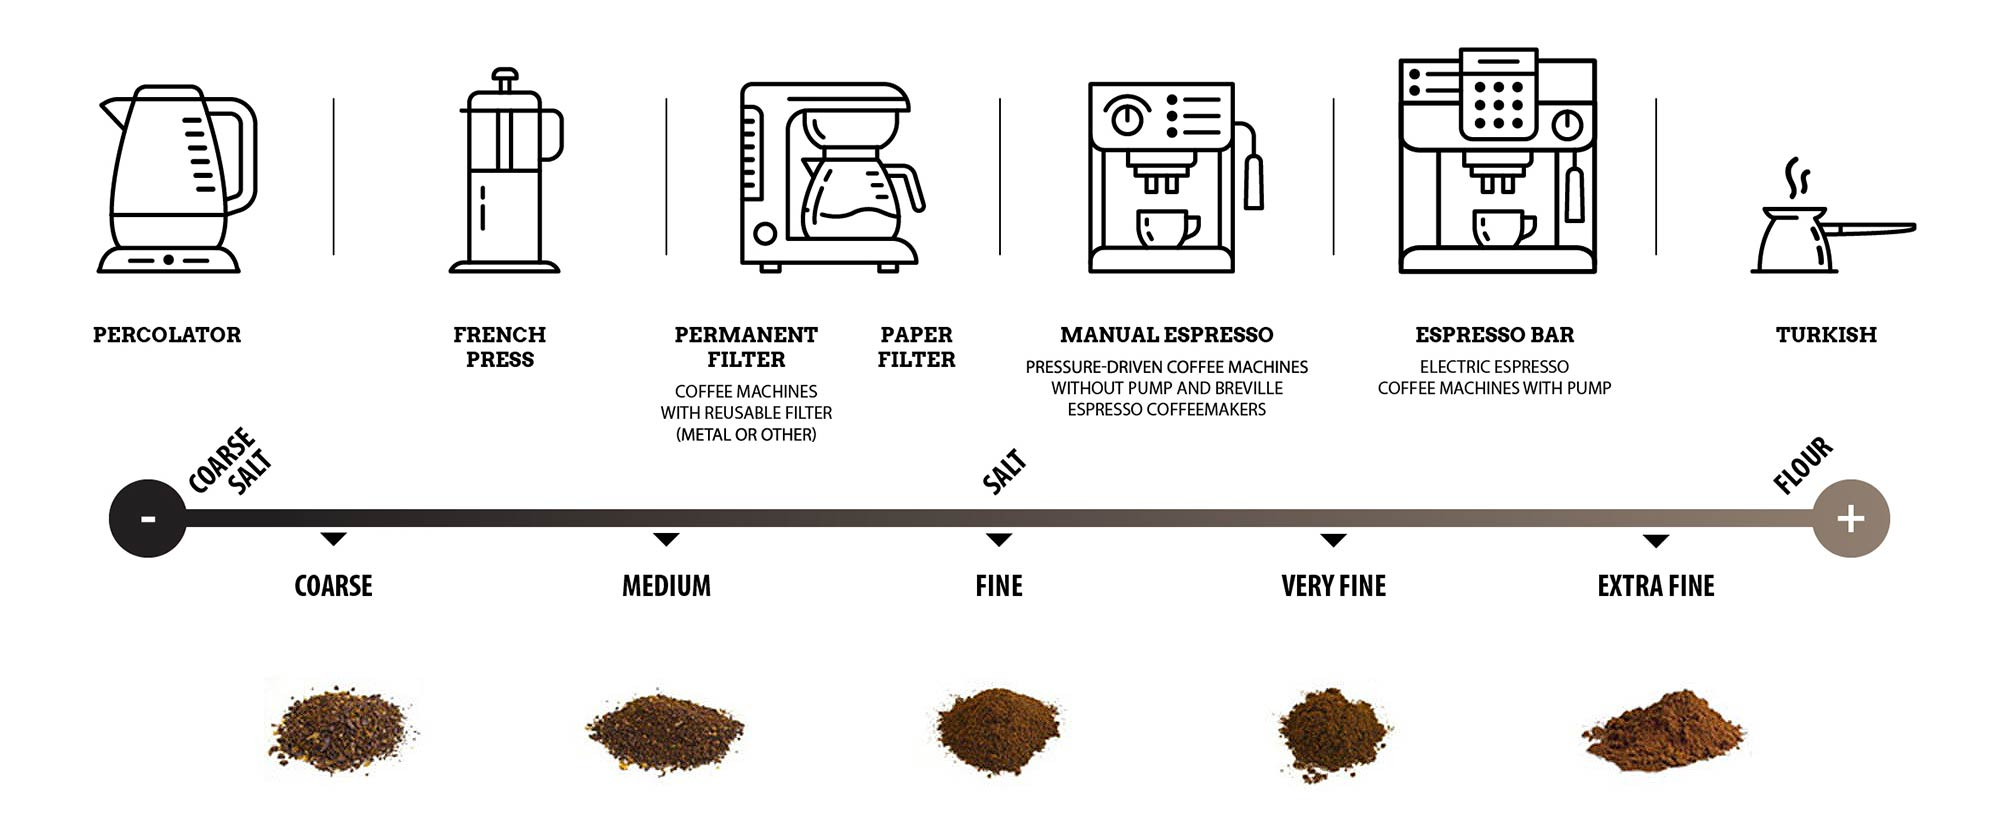 Choosing the right grind | How to make great coffee at home | Brûlerie des Monts